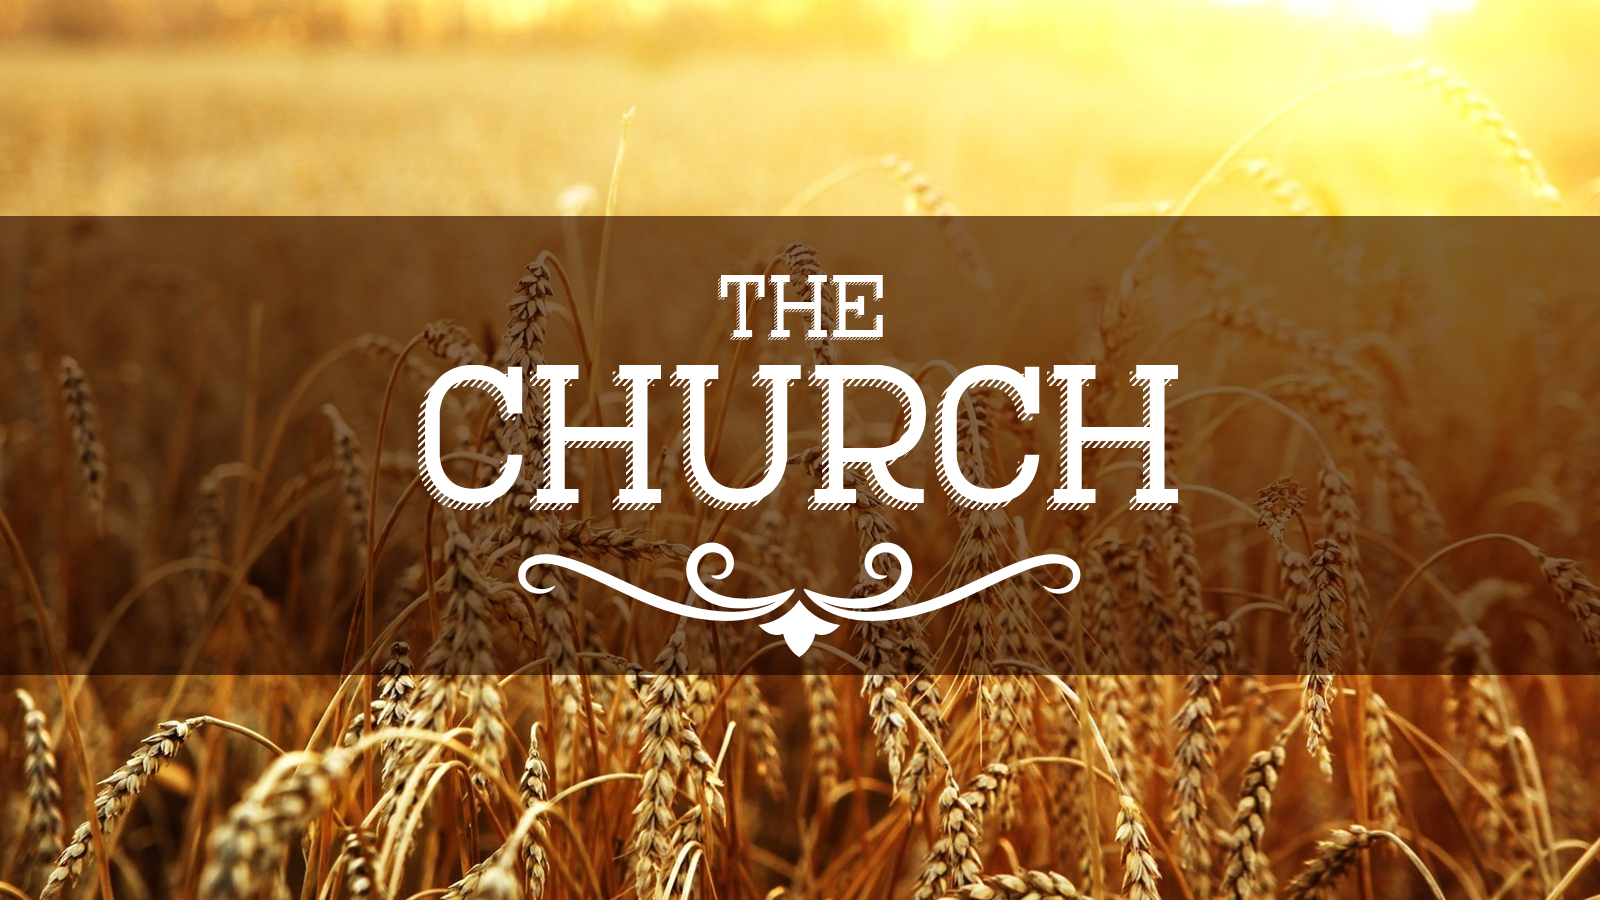 The Church Sermon Series at The Mission Church in South Jordan utah